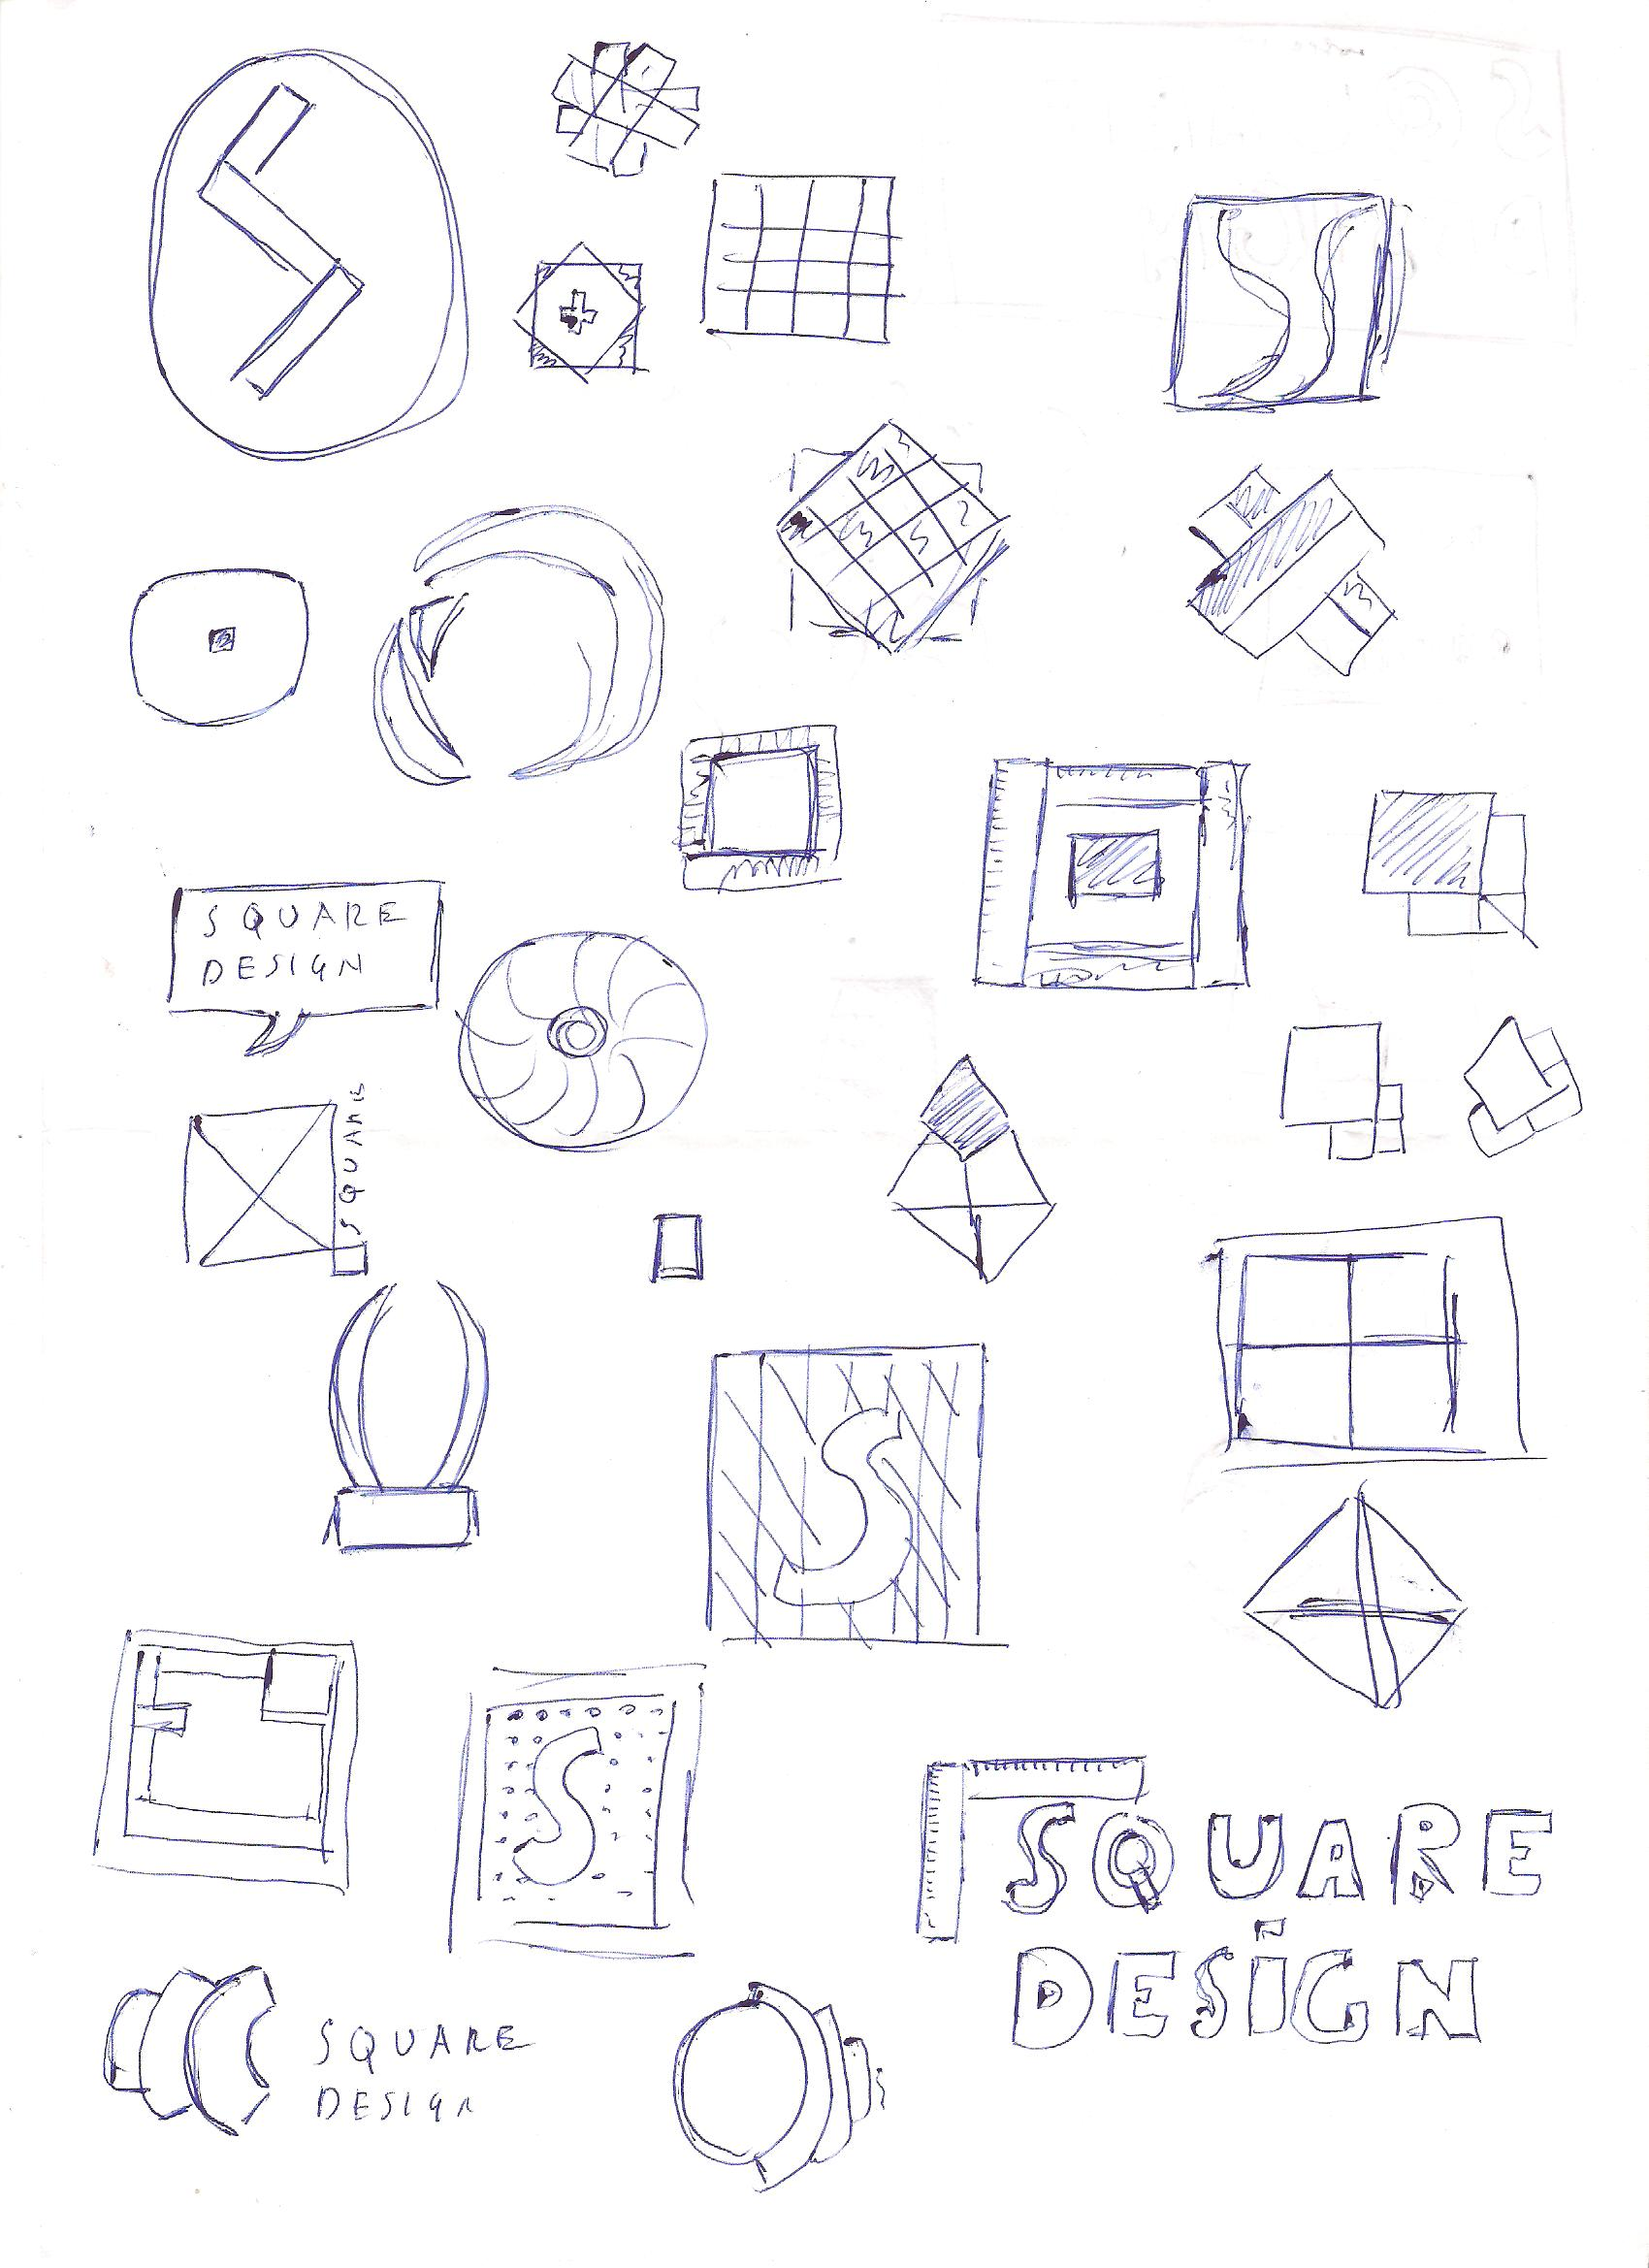 Square Design (Mood Boards)  - image 8 - student project